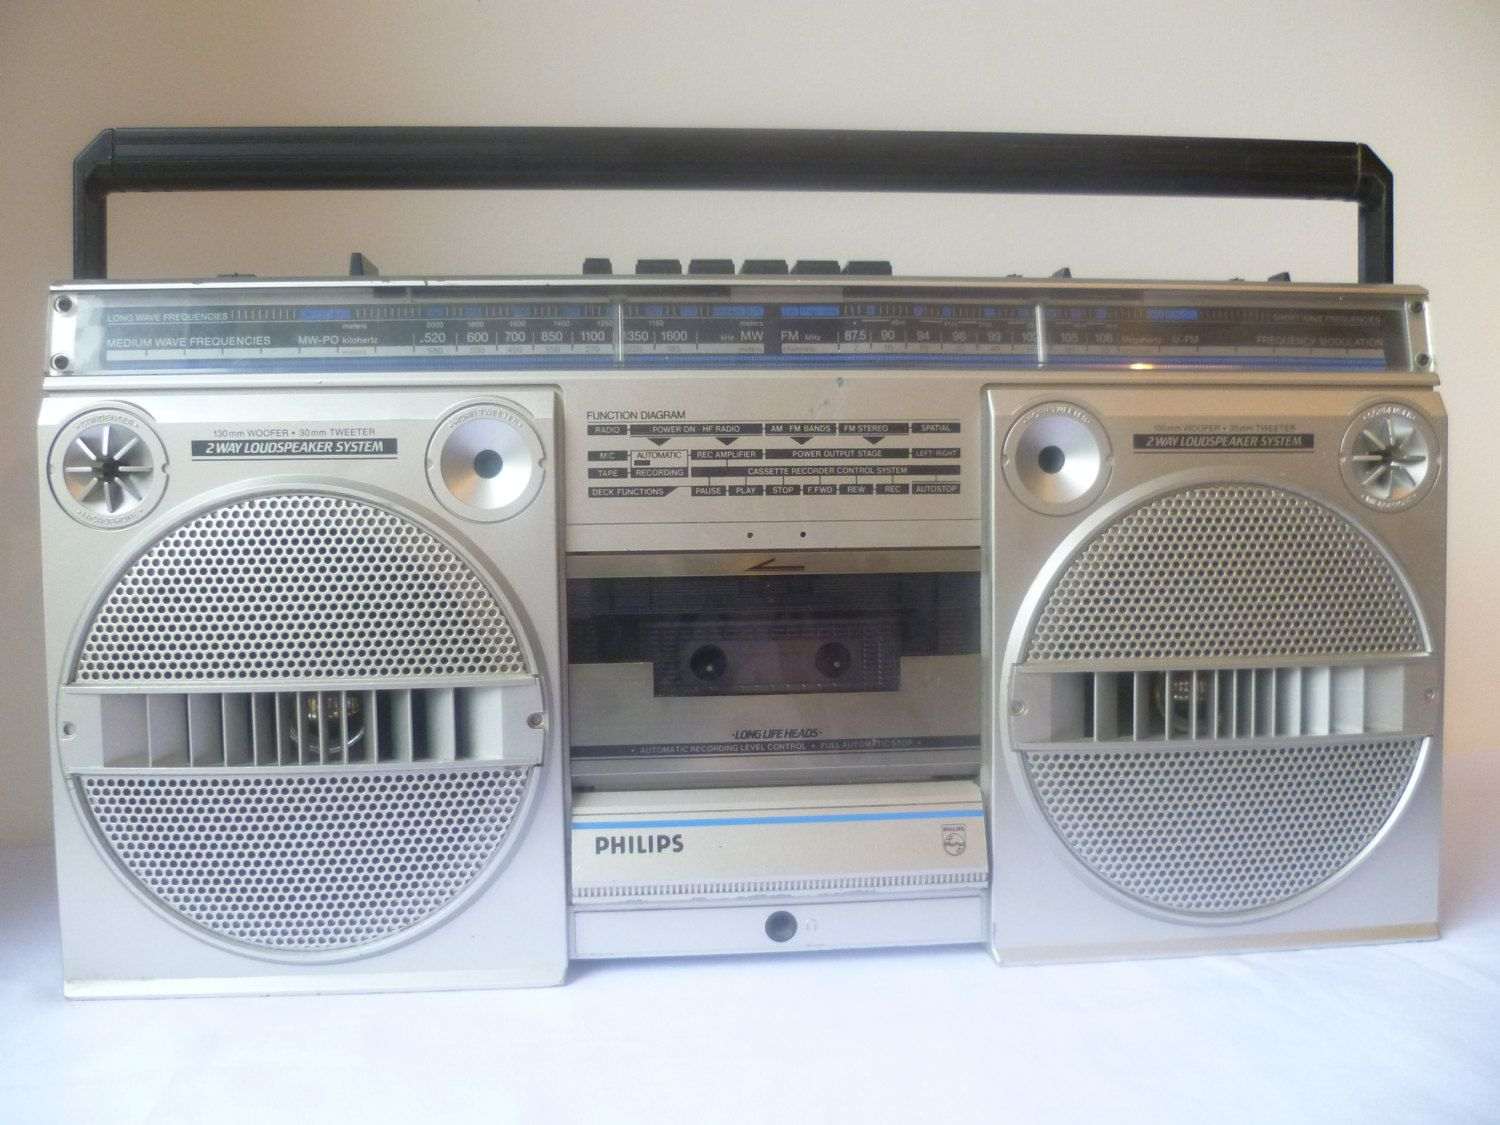 Philips d8134 ghetto blaster magnavox stereo vintage 1980 by mwkirkonetsy on - Philips ghetto blaster ...